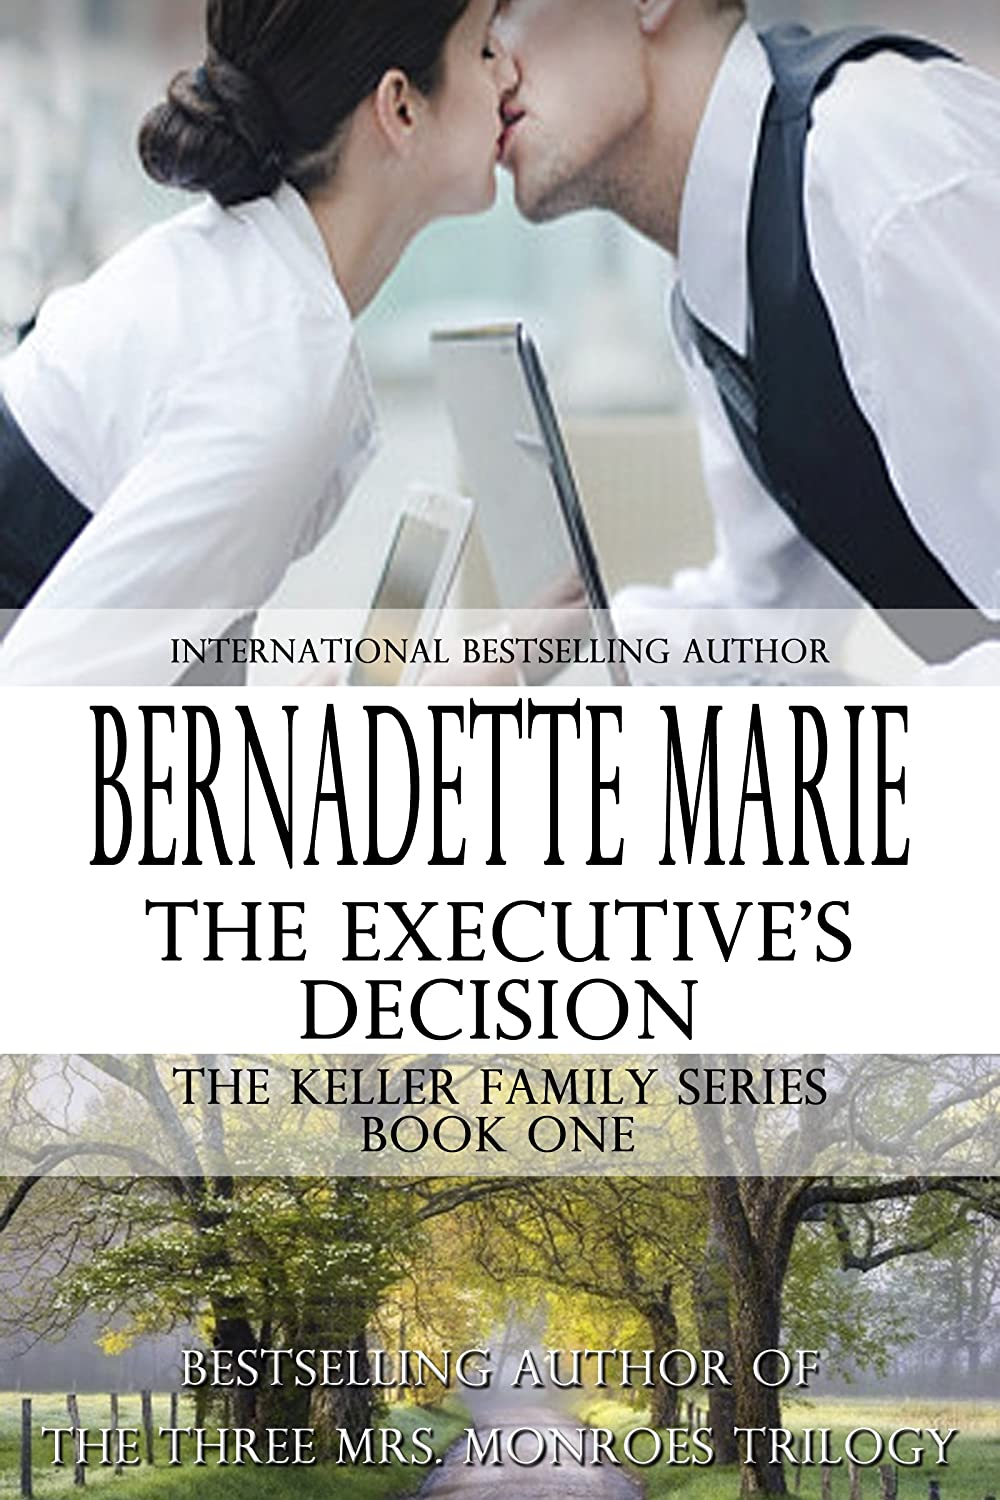 http://www.amazon.com/Executives-Decision-Keller-Family-Book-ebook/dp/B0051GTA2C